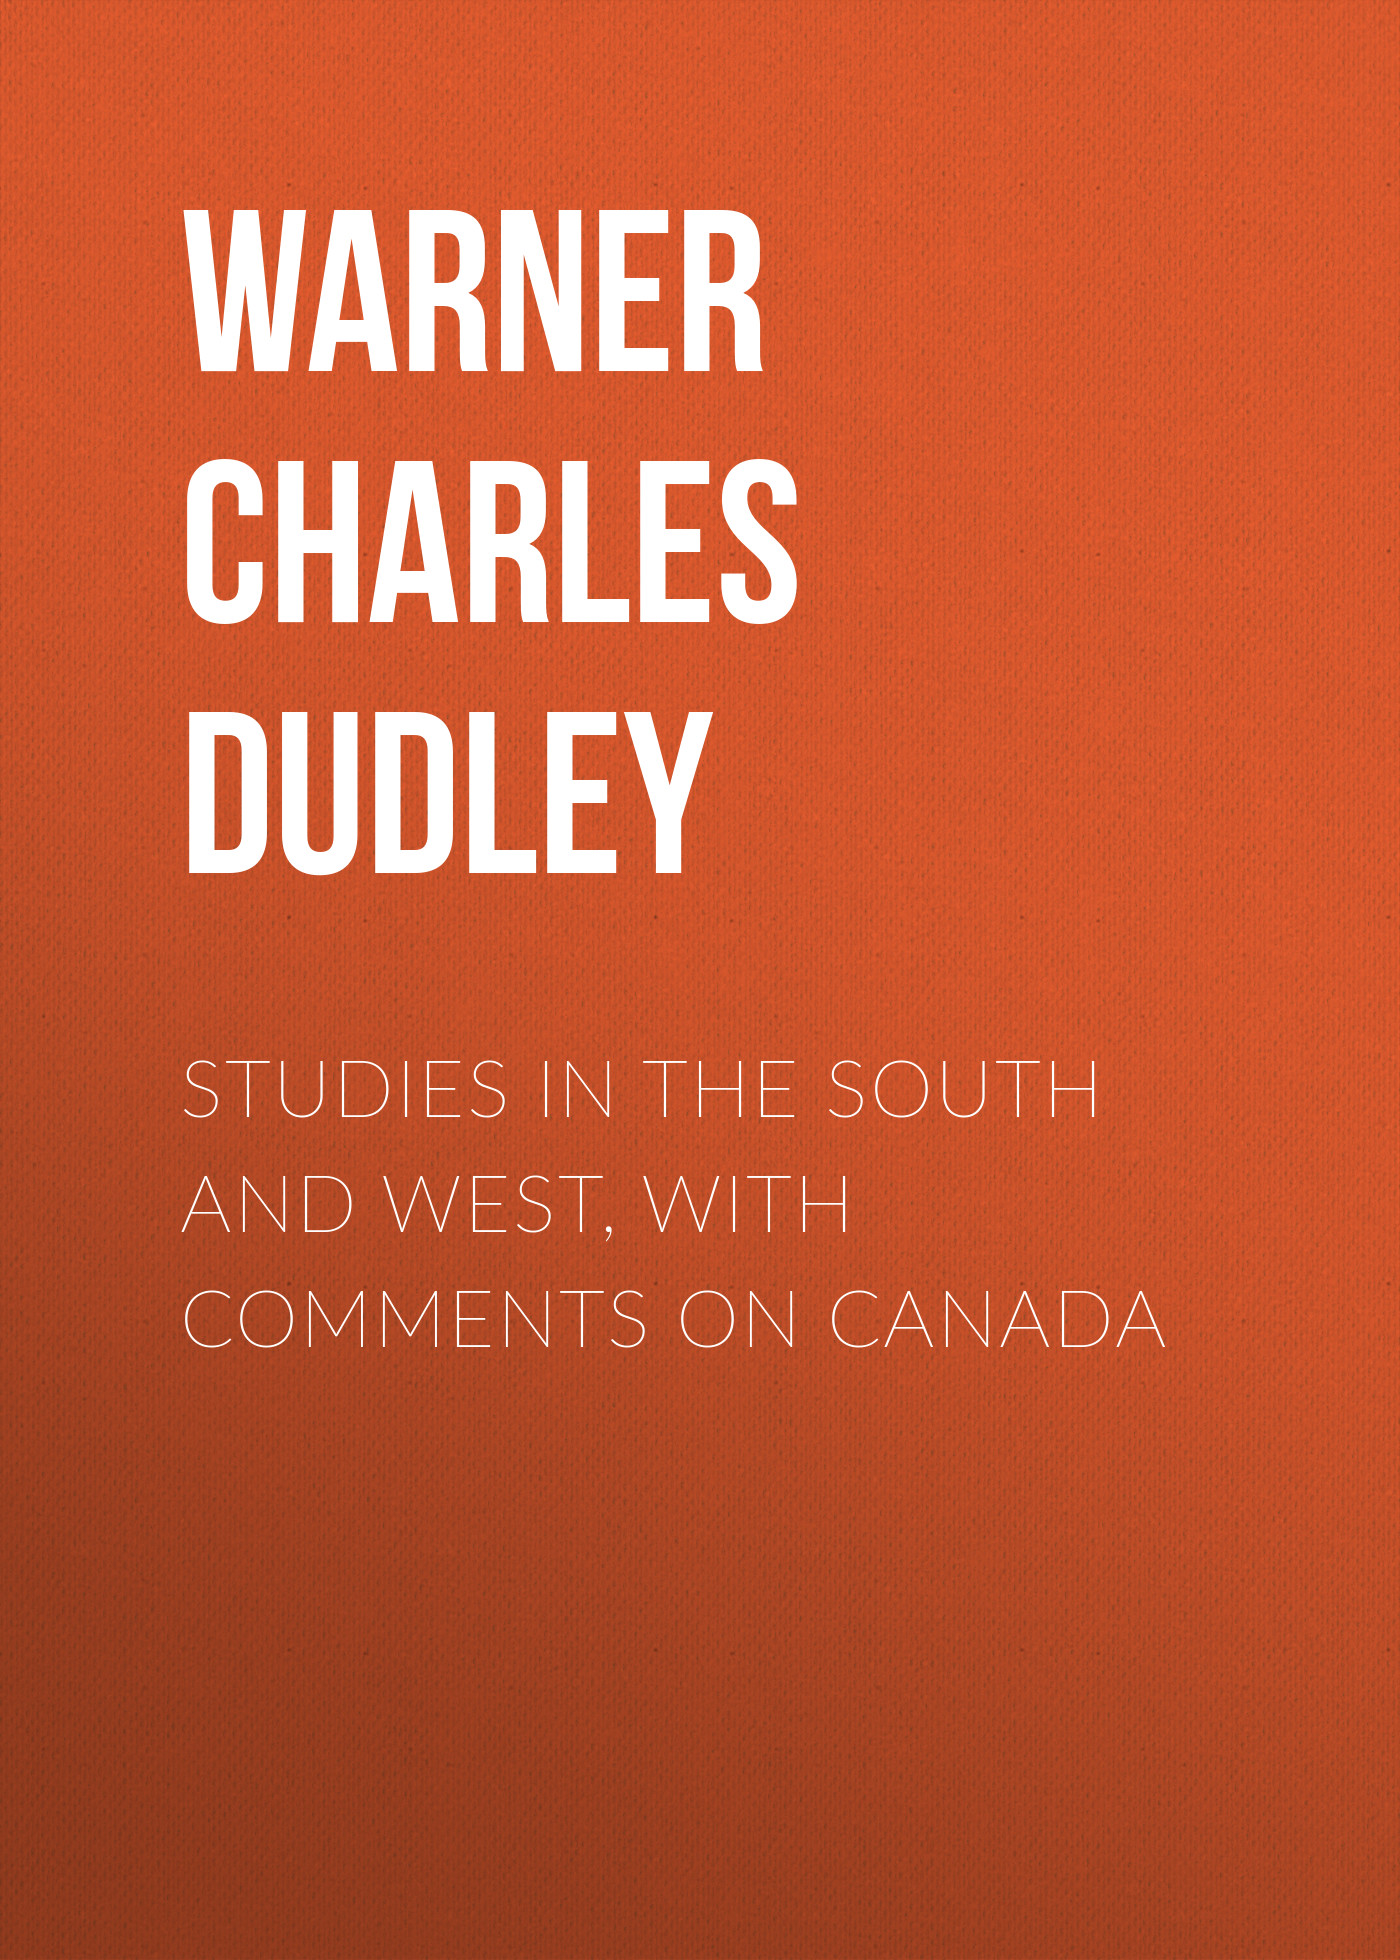 Фото - Warner Charles Dudley Studies in The South and West, With Comments on Canada warner charles dudley studies in the south and west with comments on canada